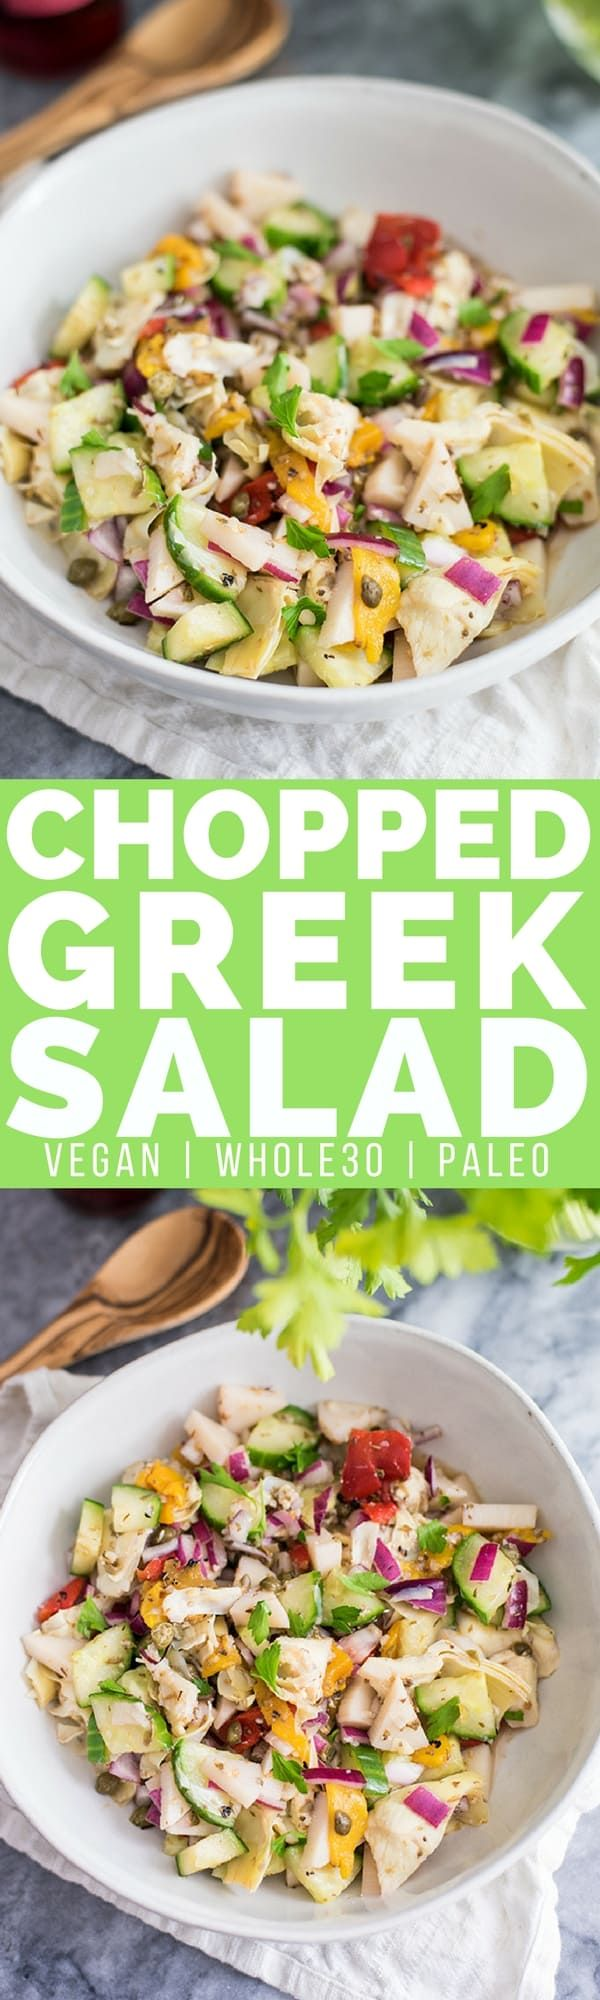 This chopped greek salad is the perfect lunch or dinner recipe! Vegan, paleo, grain free and Whole30 approved!  | Posted By: DebbieNet.com